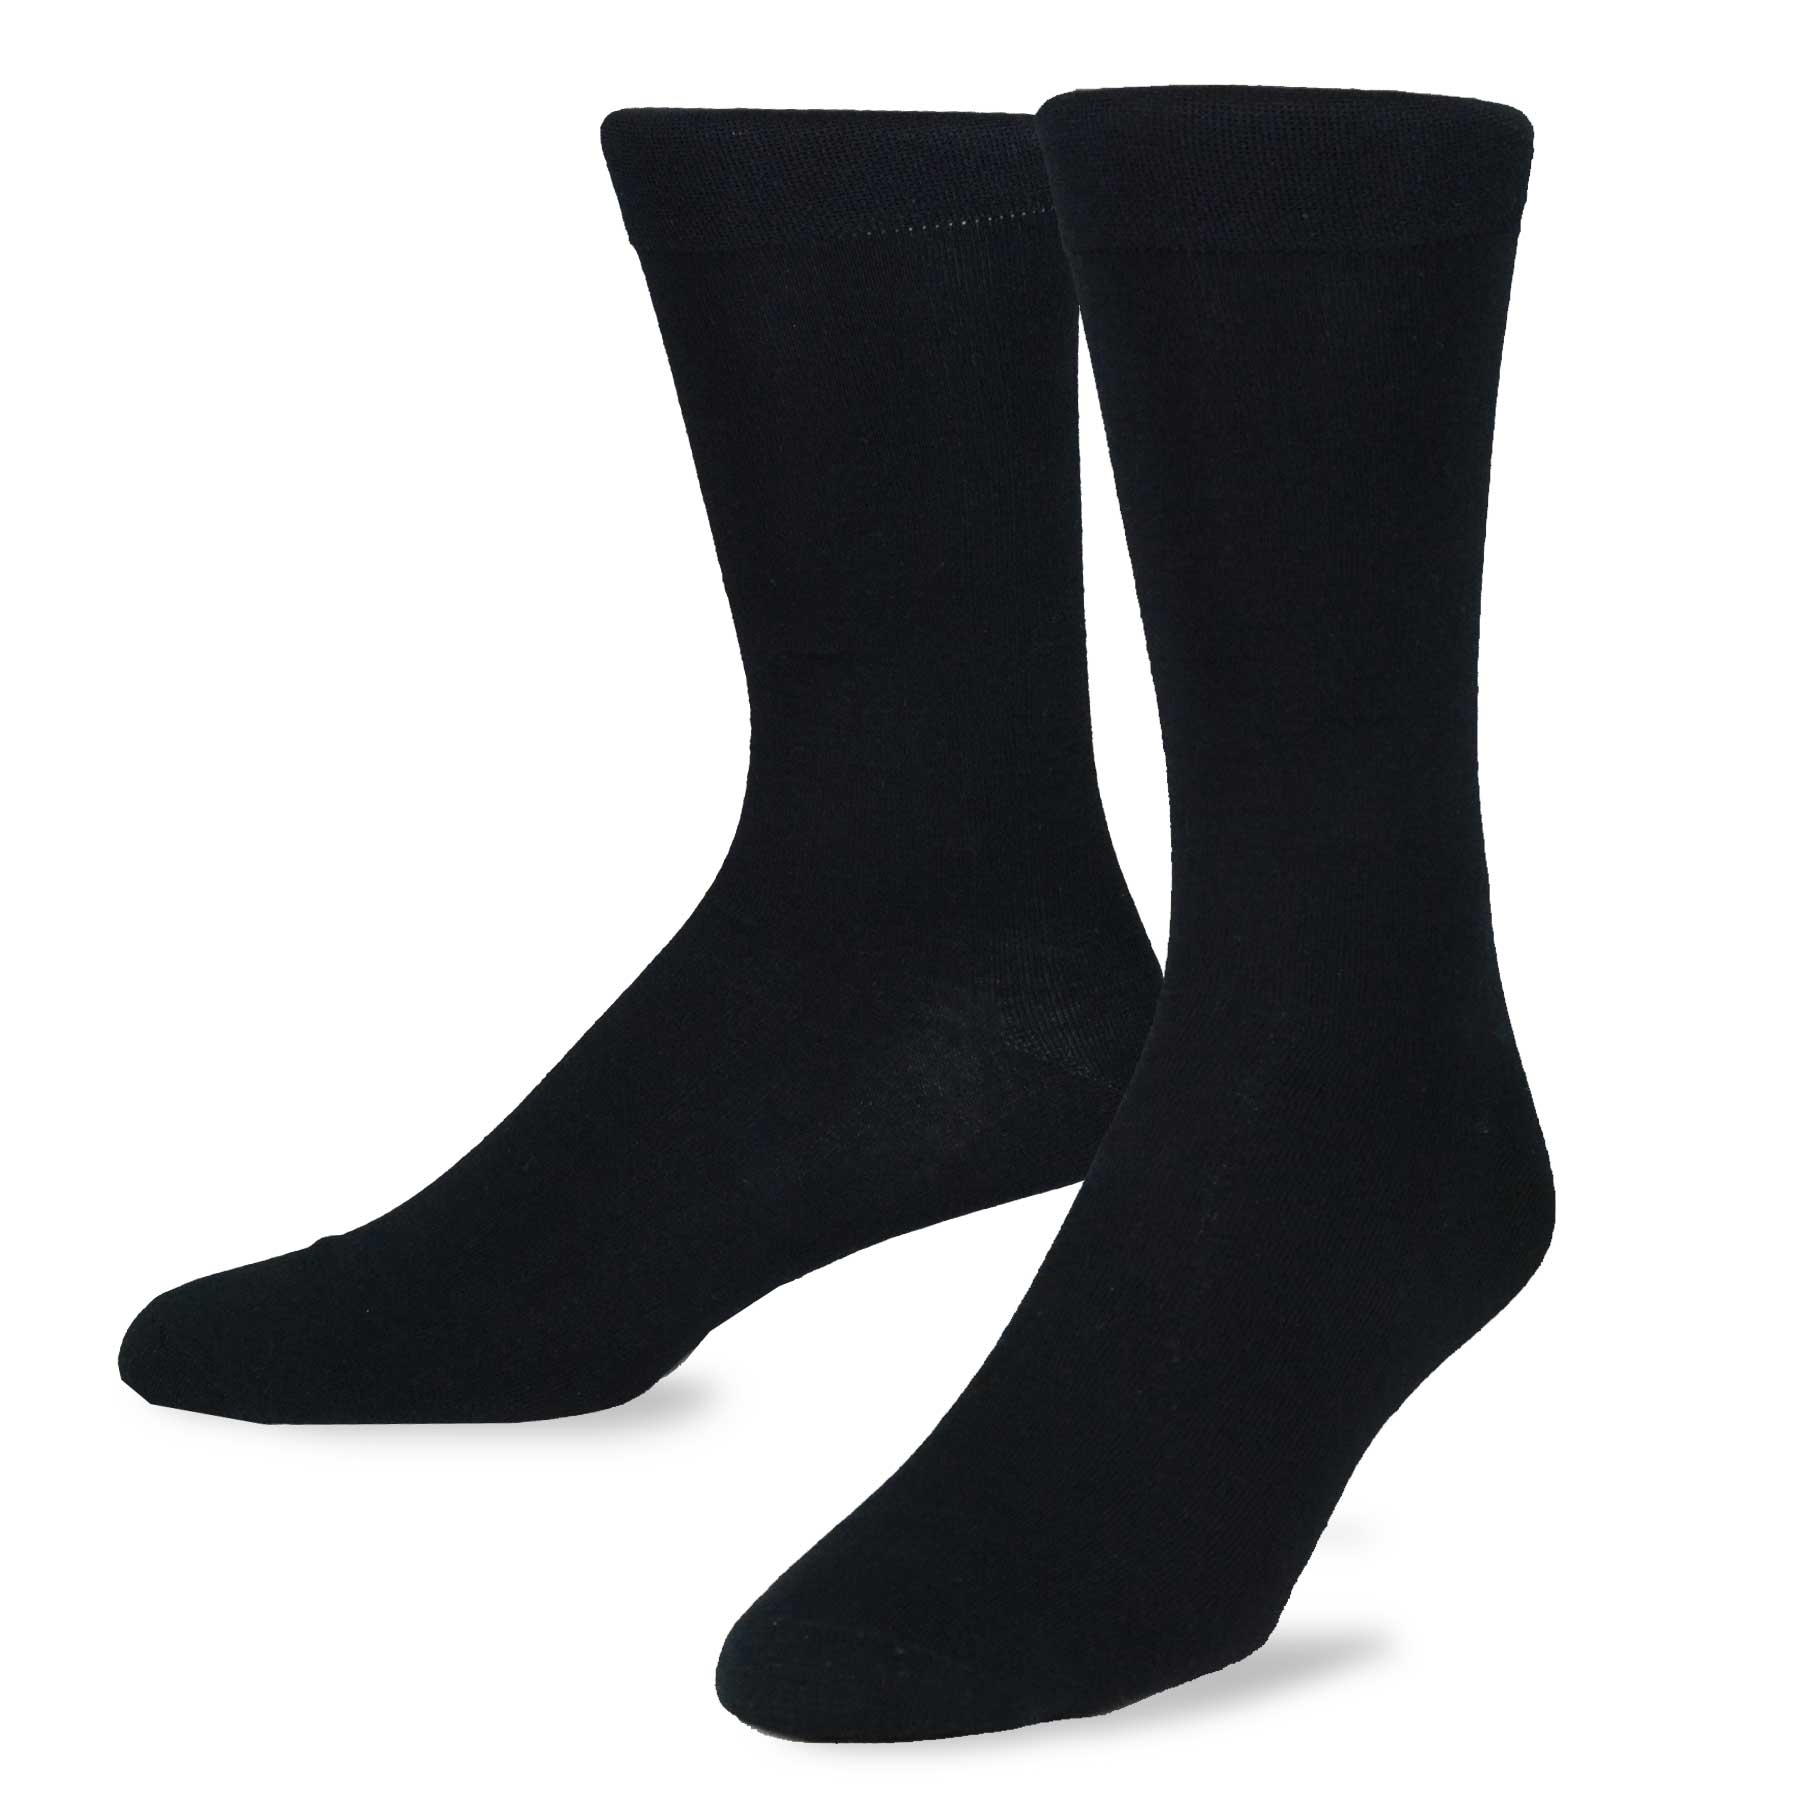 DRESS Socks Comfort Top 6pk